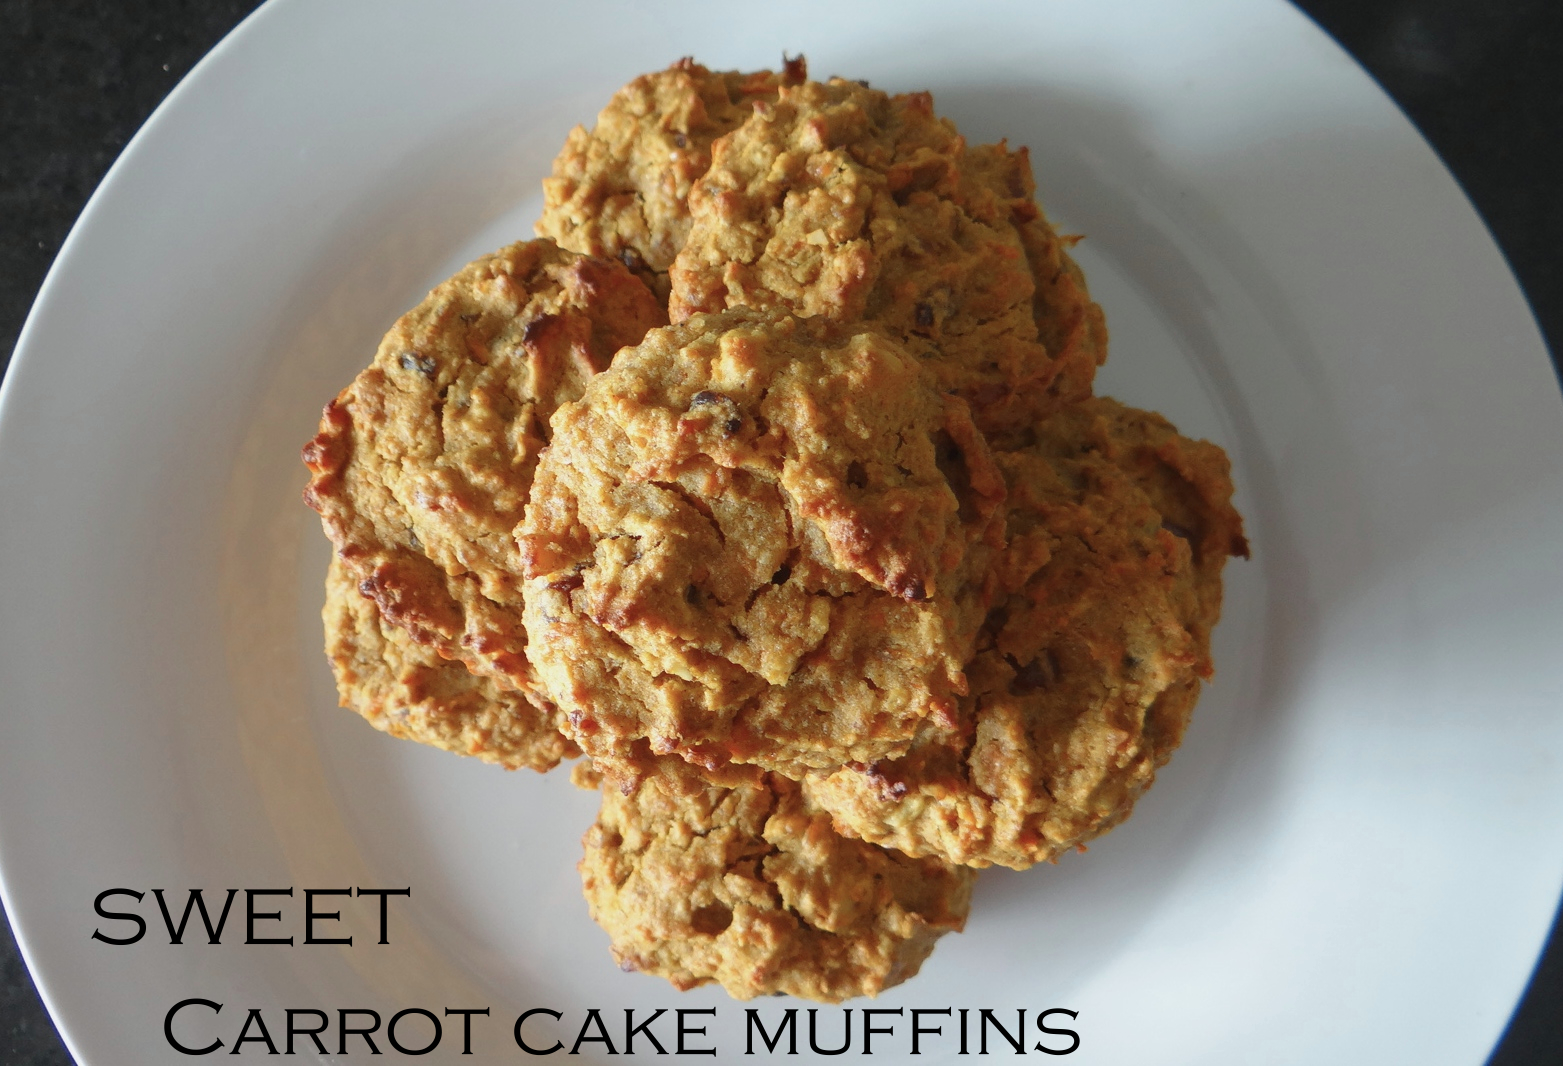 Whole Foods Carrot Cake Muffins